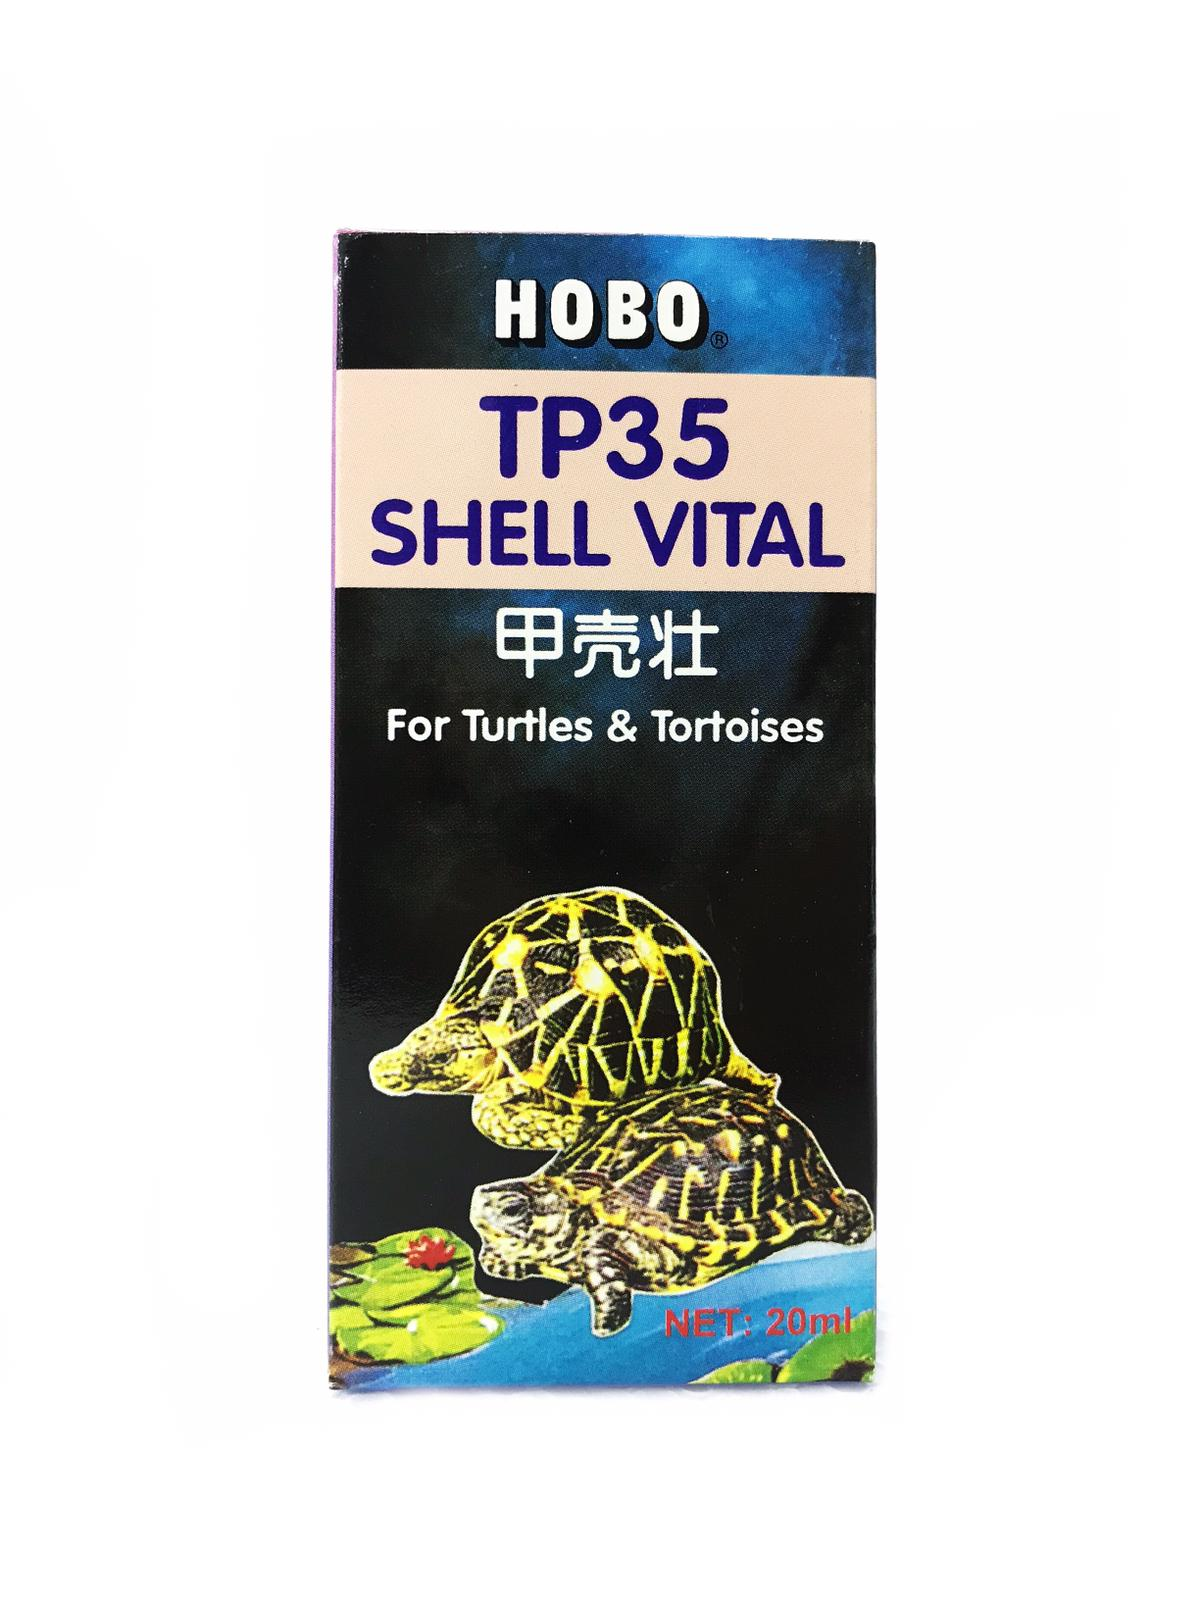 Hobo TP35 Shell Vital For Turtles And Vital